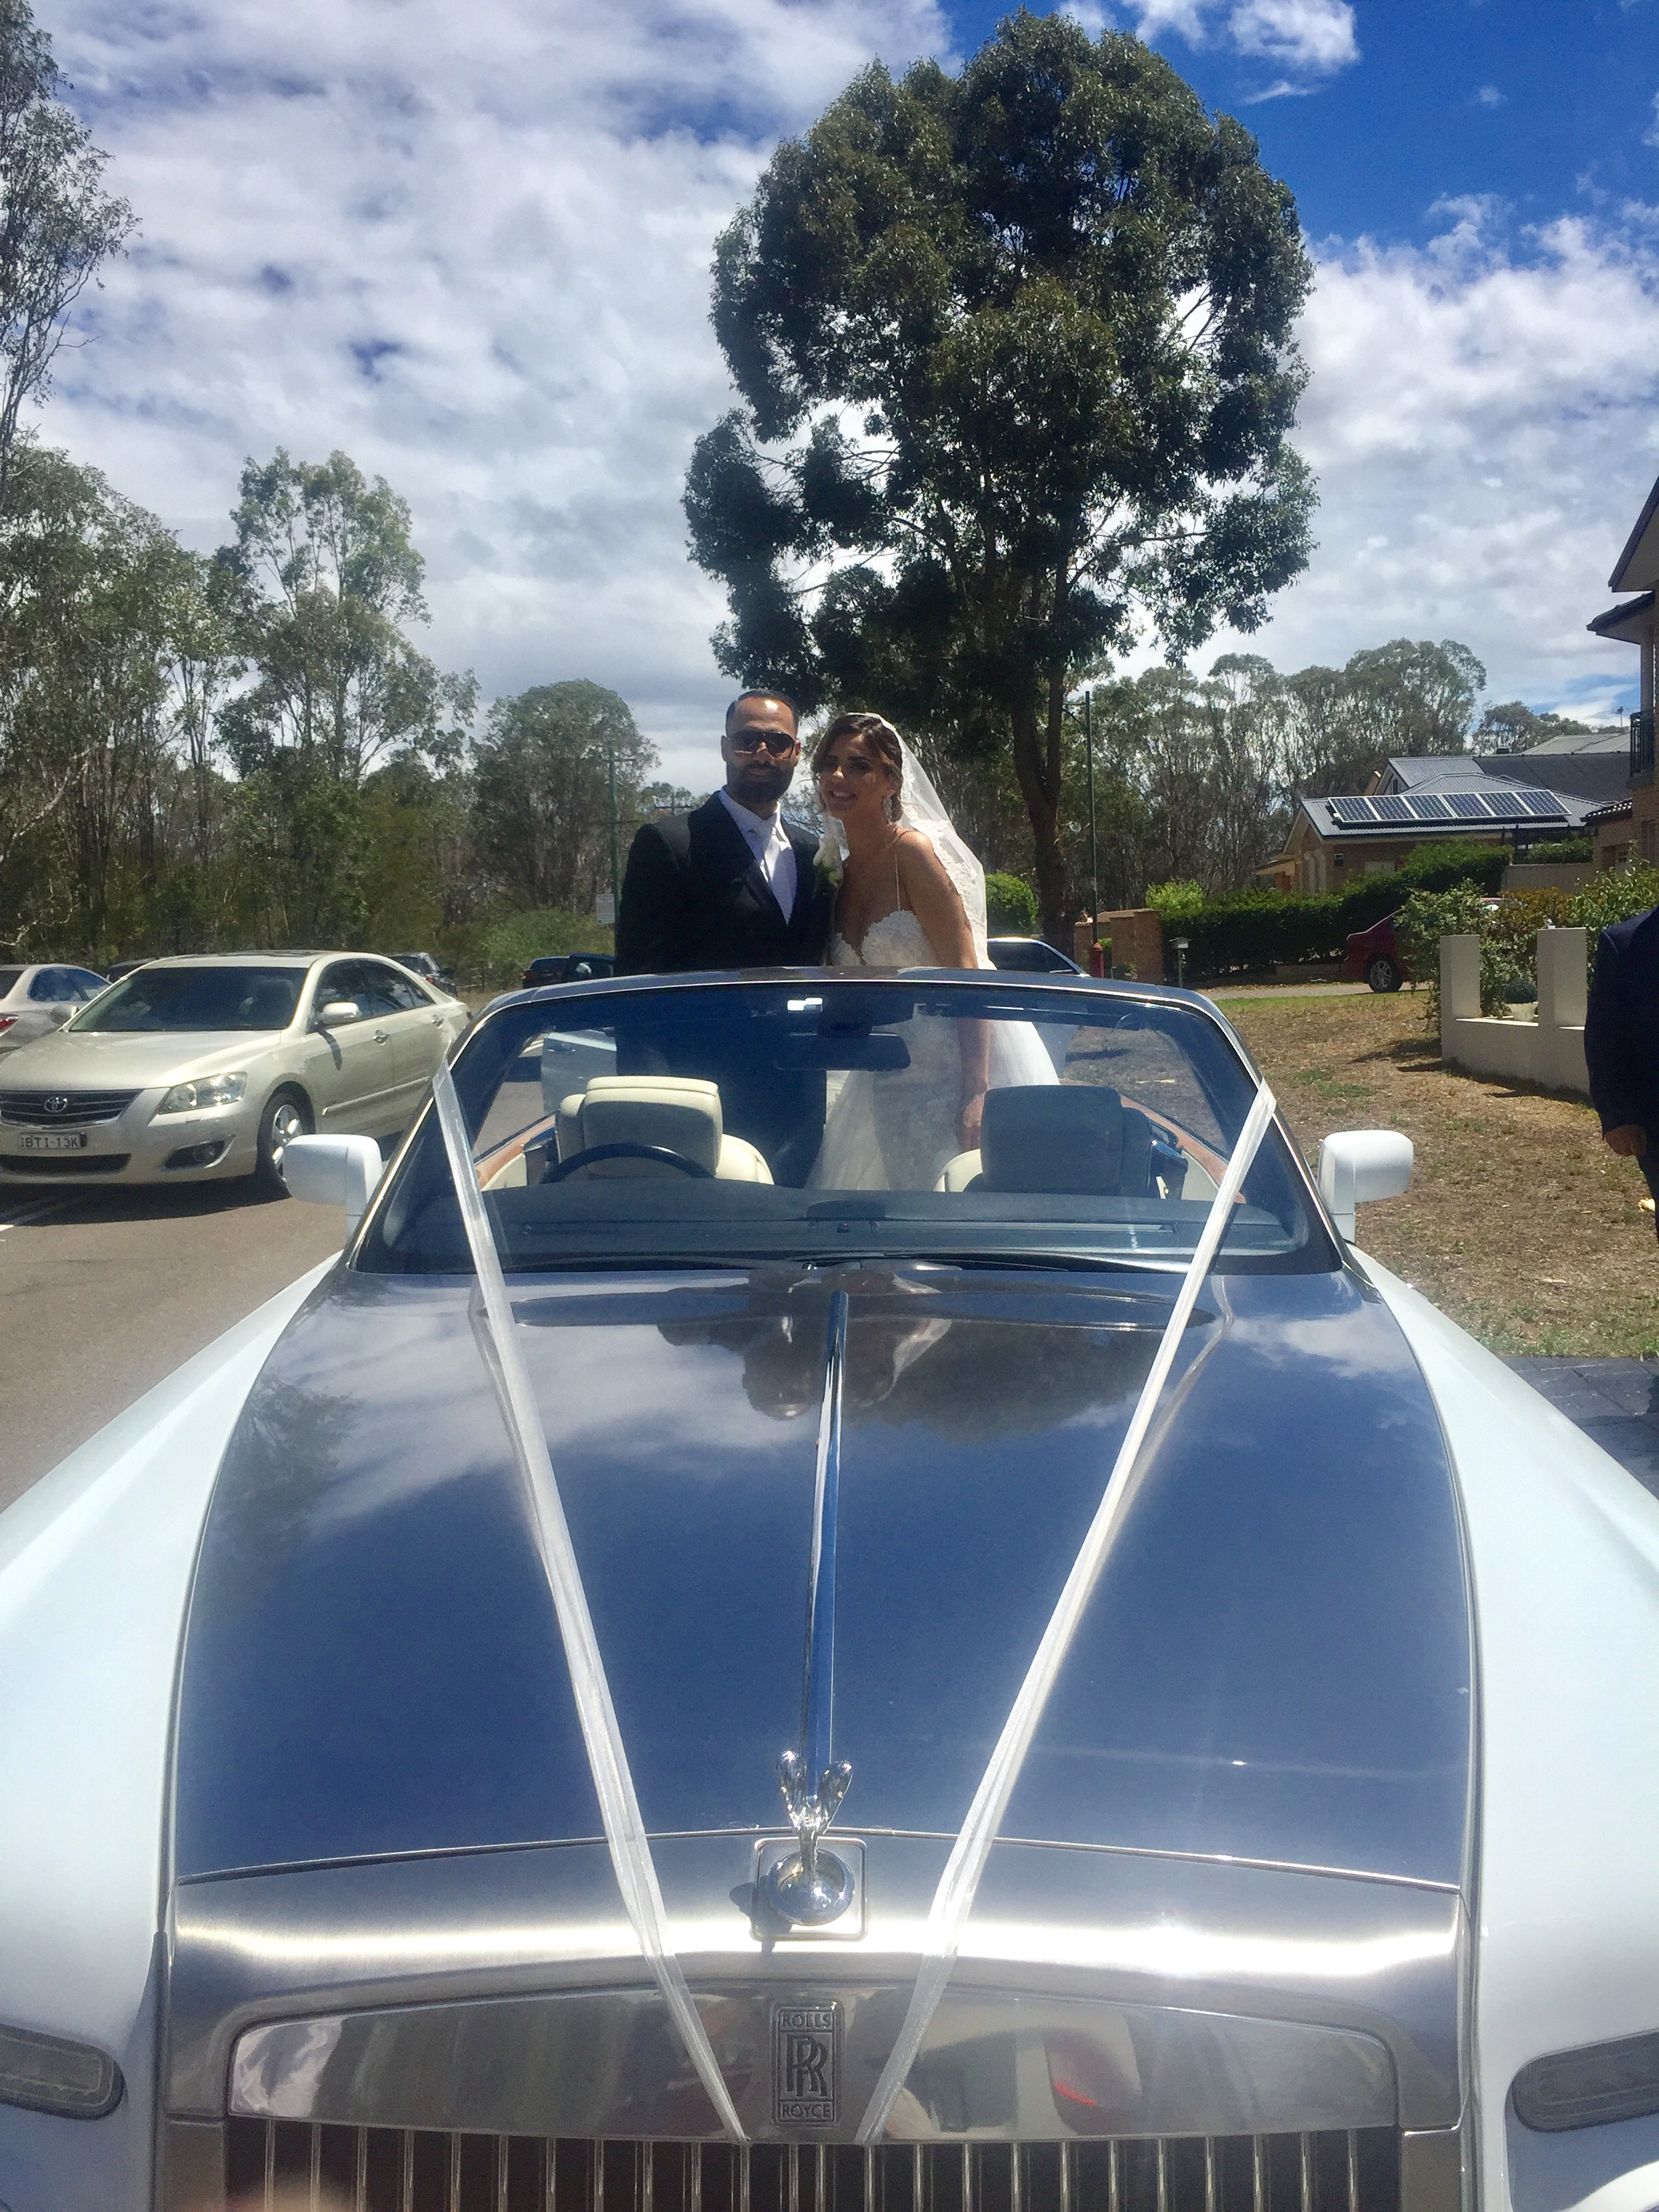 Canberra renewal of vows